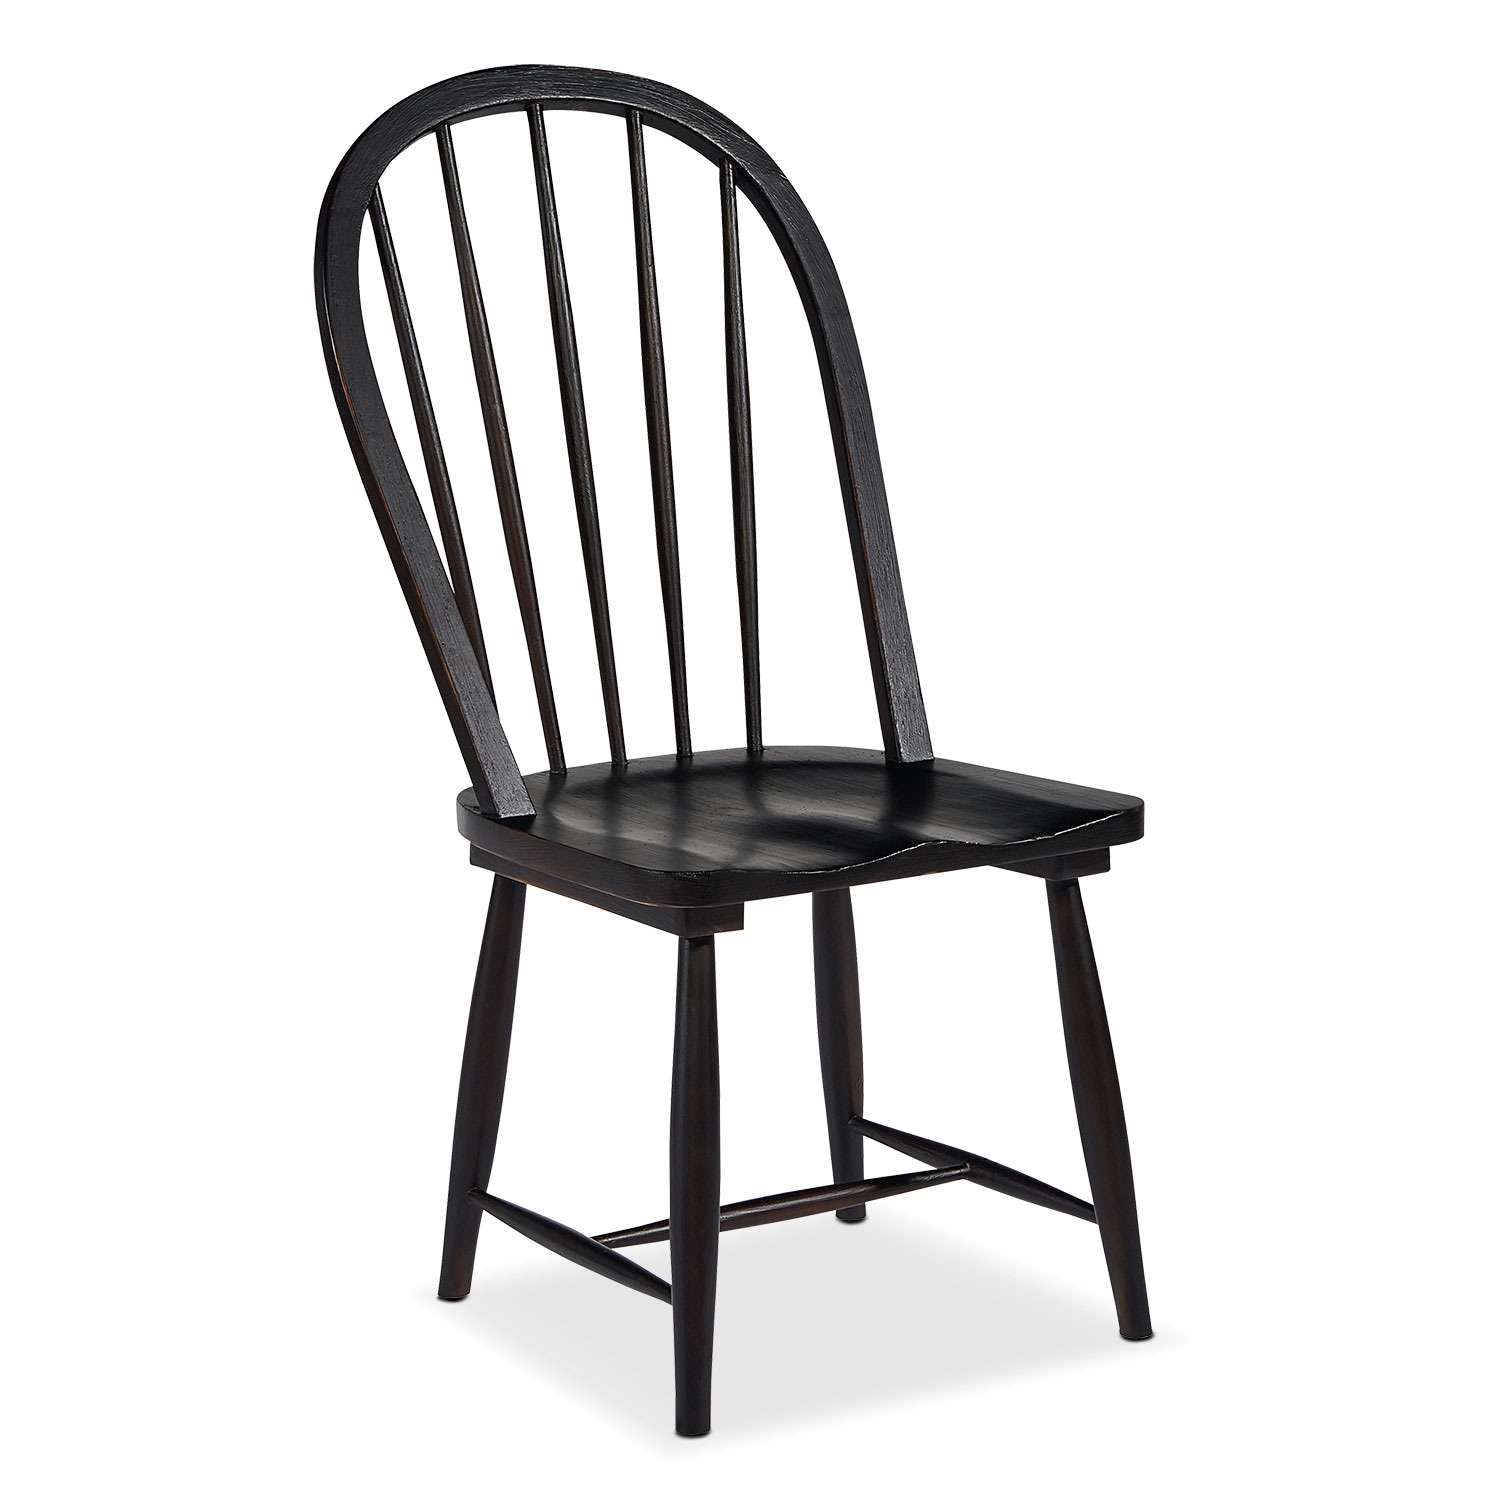 Primitive Windsor Hoop Side Chair - Black